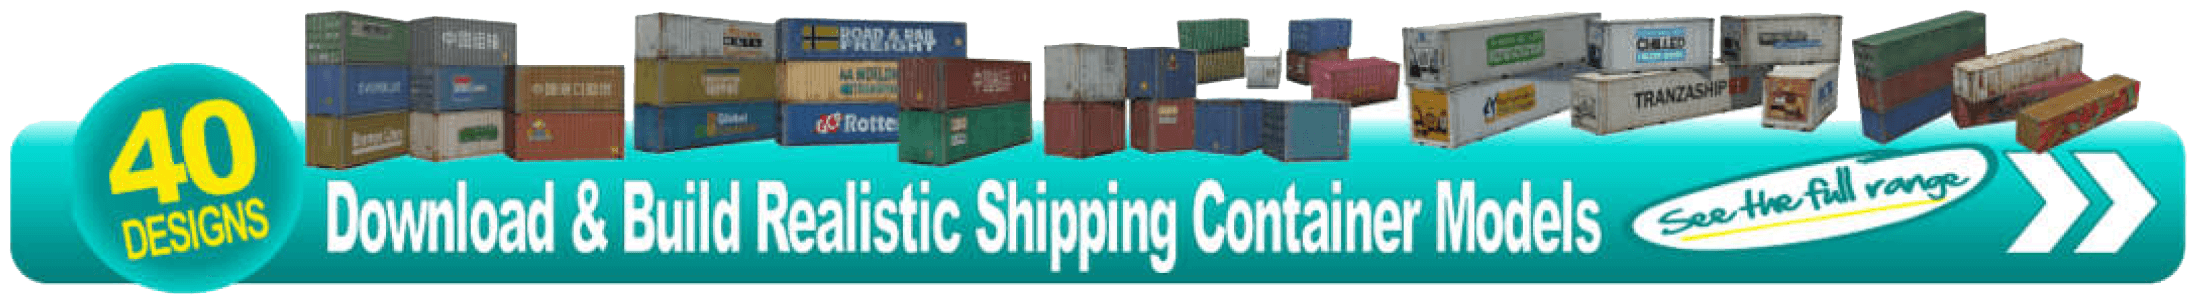 printable plans shipping container scale railroad models